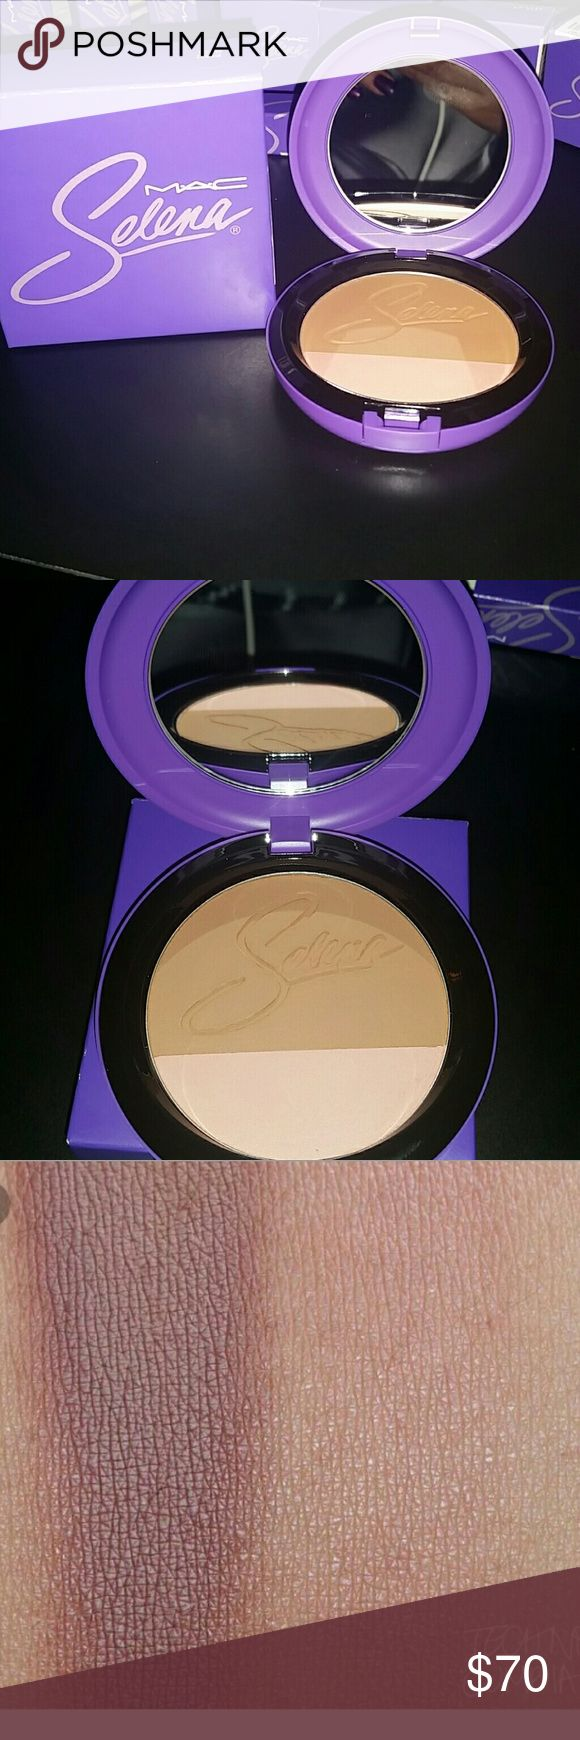 Selena's Mac Collection Blush Selena's Powder Blush. Beautiful light brown n light colored shimmer. Picture found online. Product is sold out, brand new, original box, untouched.  ALL OFFERS WELCOMED.. SHIP NEXT DAY Selena Mac Collection Makeup Blush